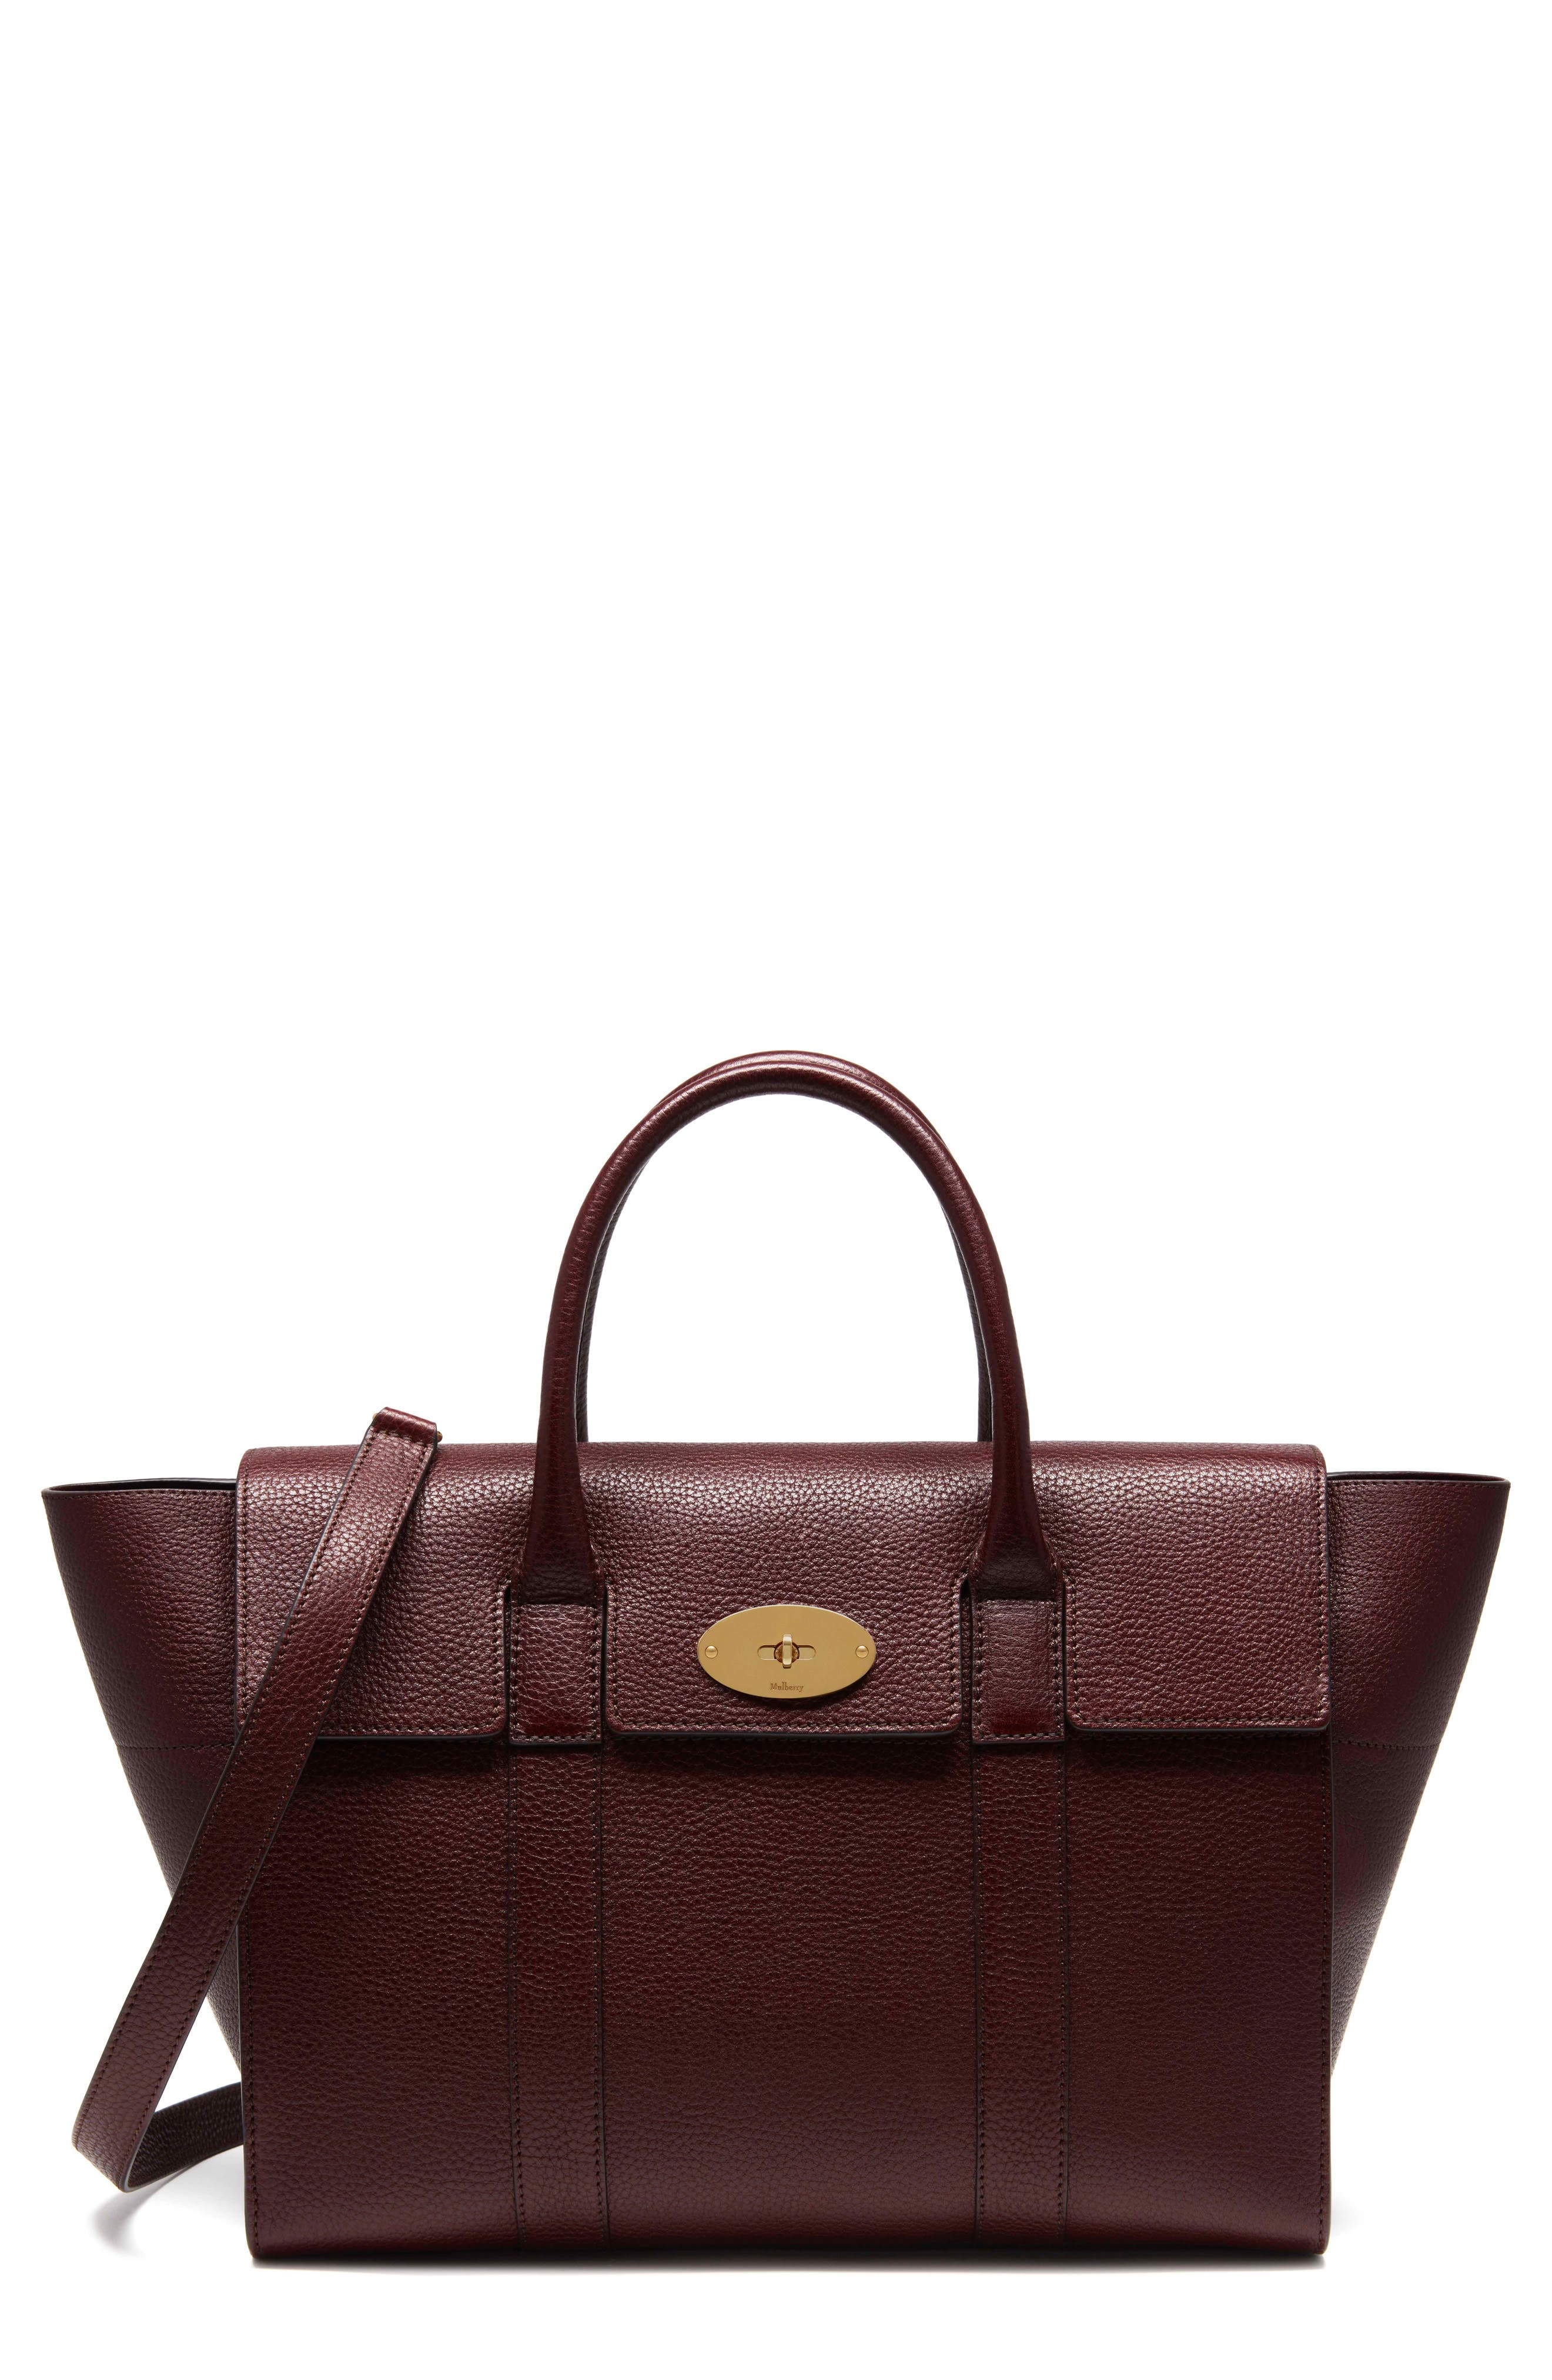 Bayswater Calfskin Leather Satchel,                             Main thumbnail 1, color,